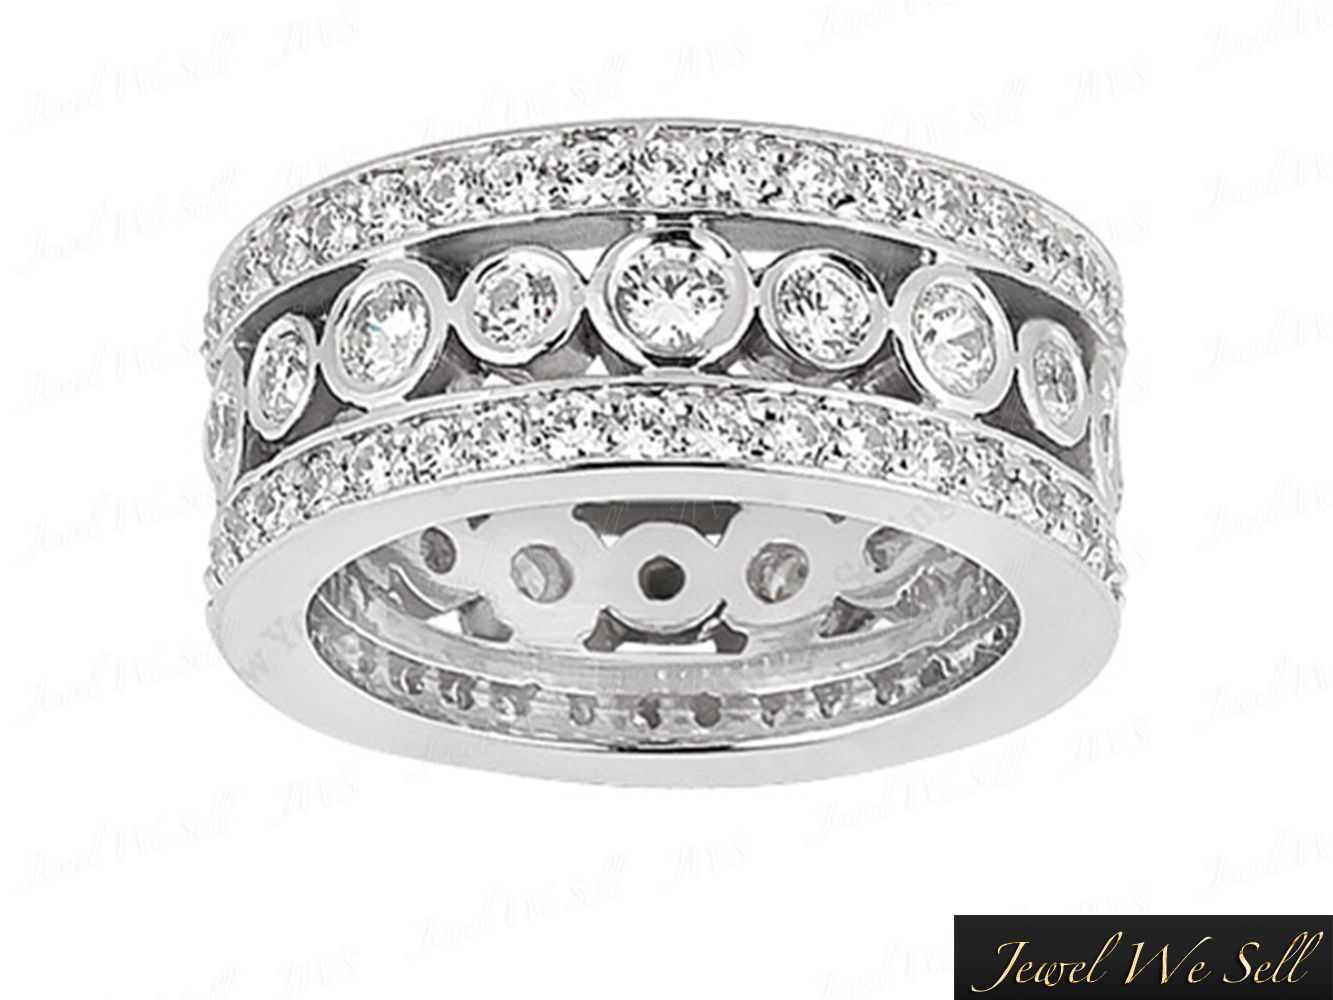 This is a picture of Details about 388.388Ct Cut 38 Row Wide Diamond Eternity Wedding Band Bridal Ring Platinum F VS38